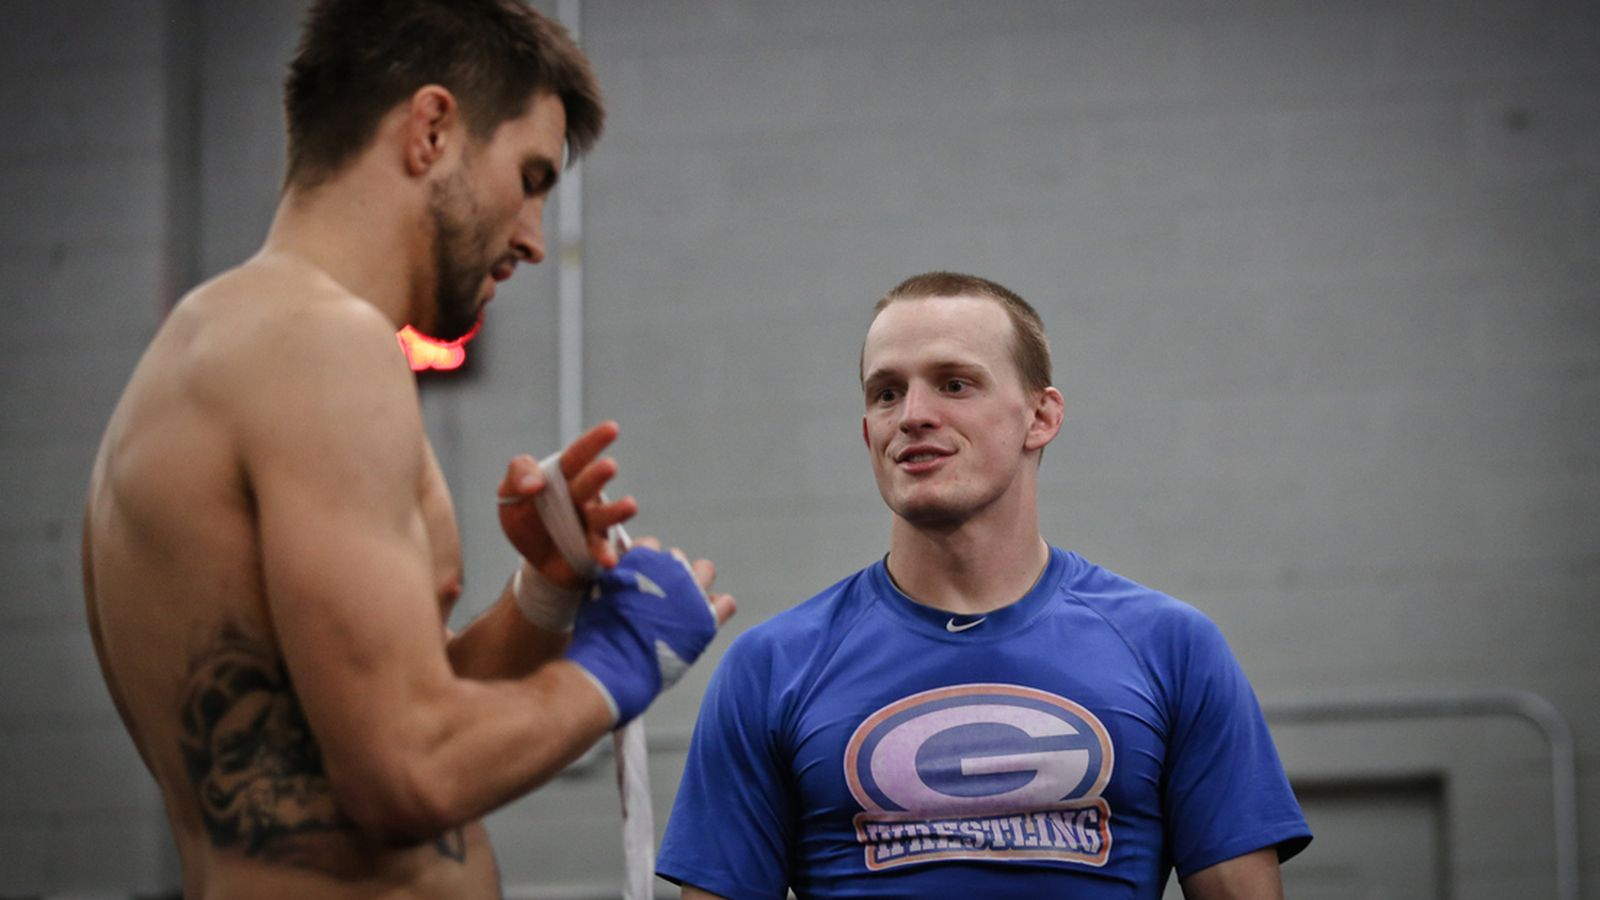 mma and ethics Ufc is coming to bbc  athleticism and ethics of mma fighters and the great events and  fighting men followed two newcomers to mma as they prepared.